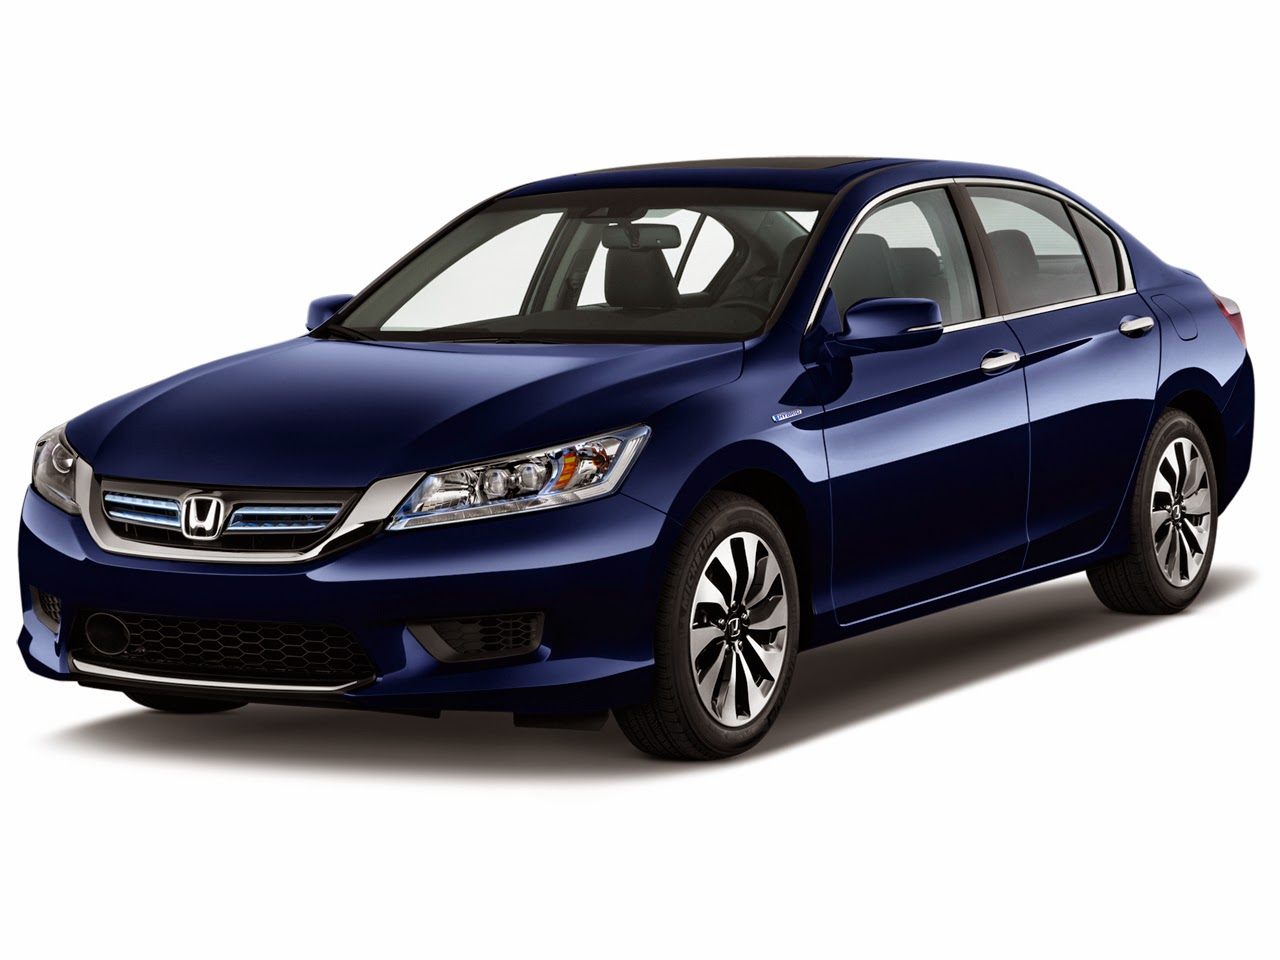 Honda accord hybrid 2015 car wallpaper car wallpaper hd for Honda hybrid cars